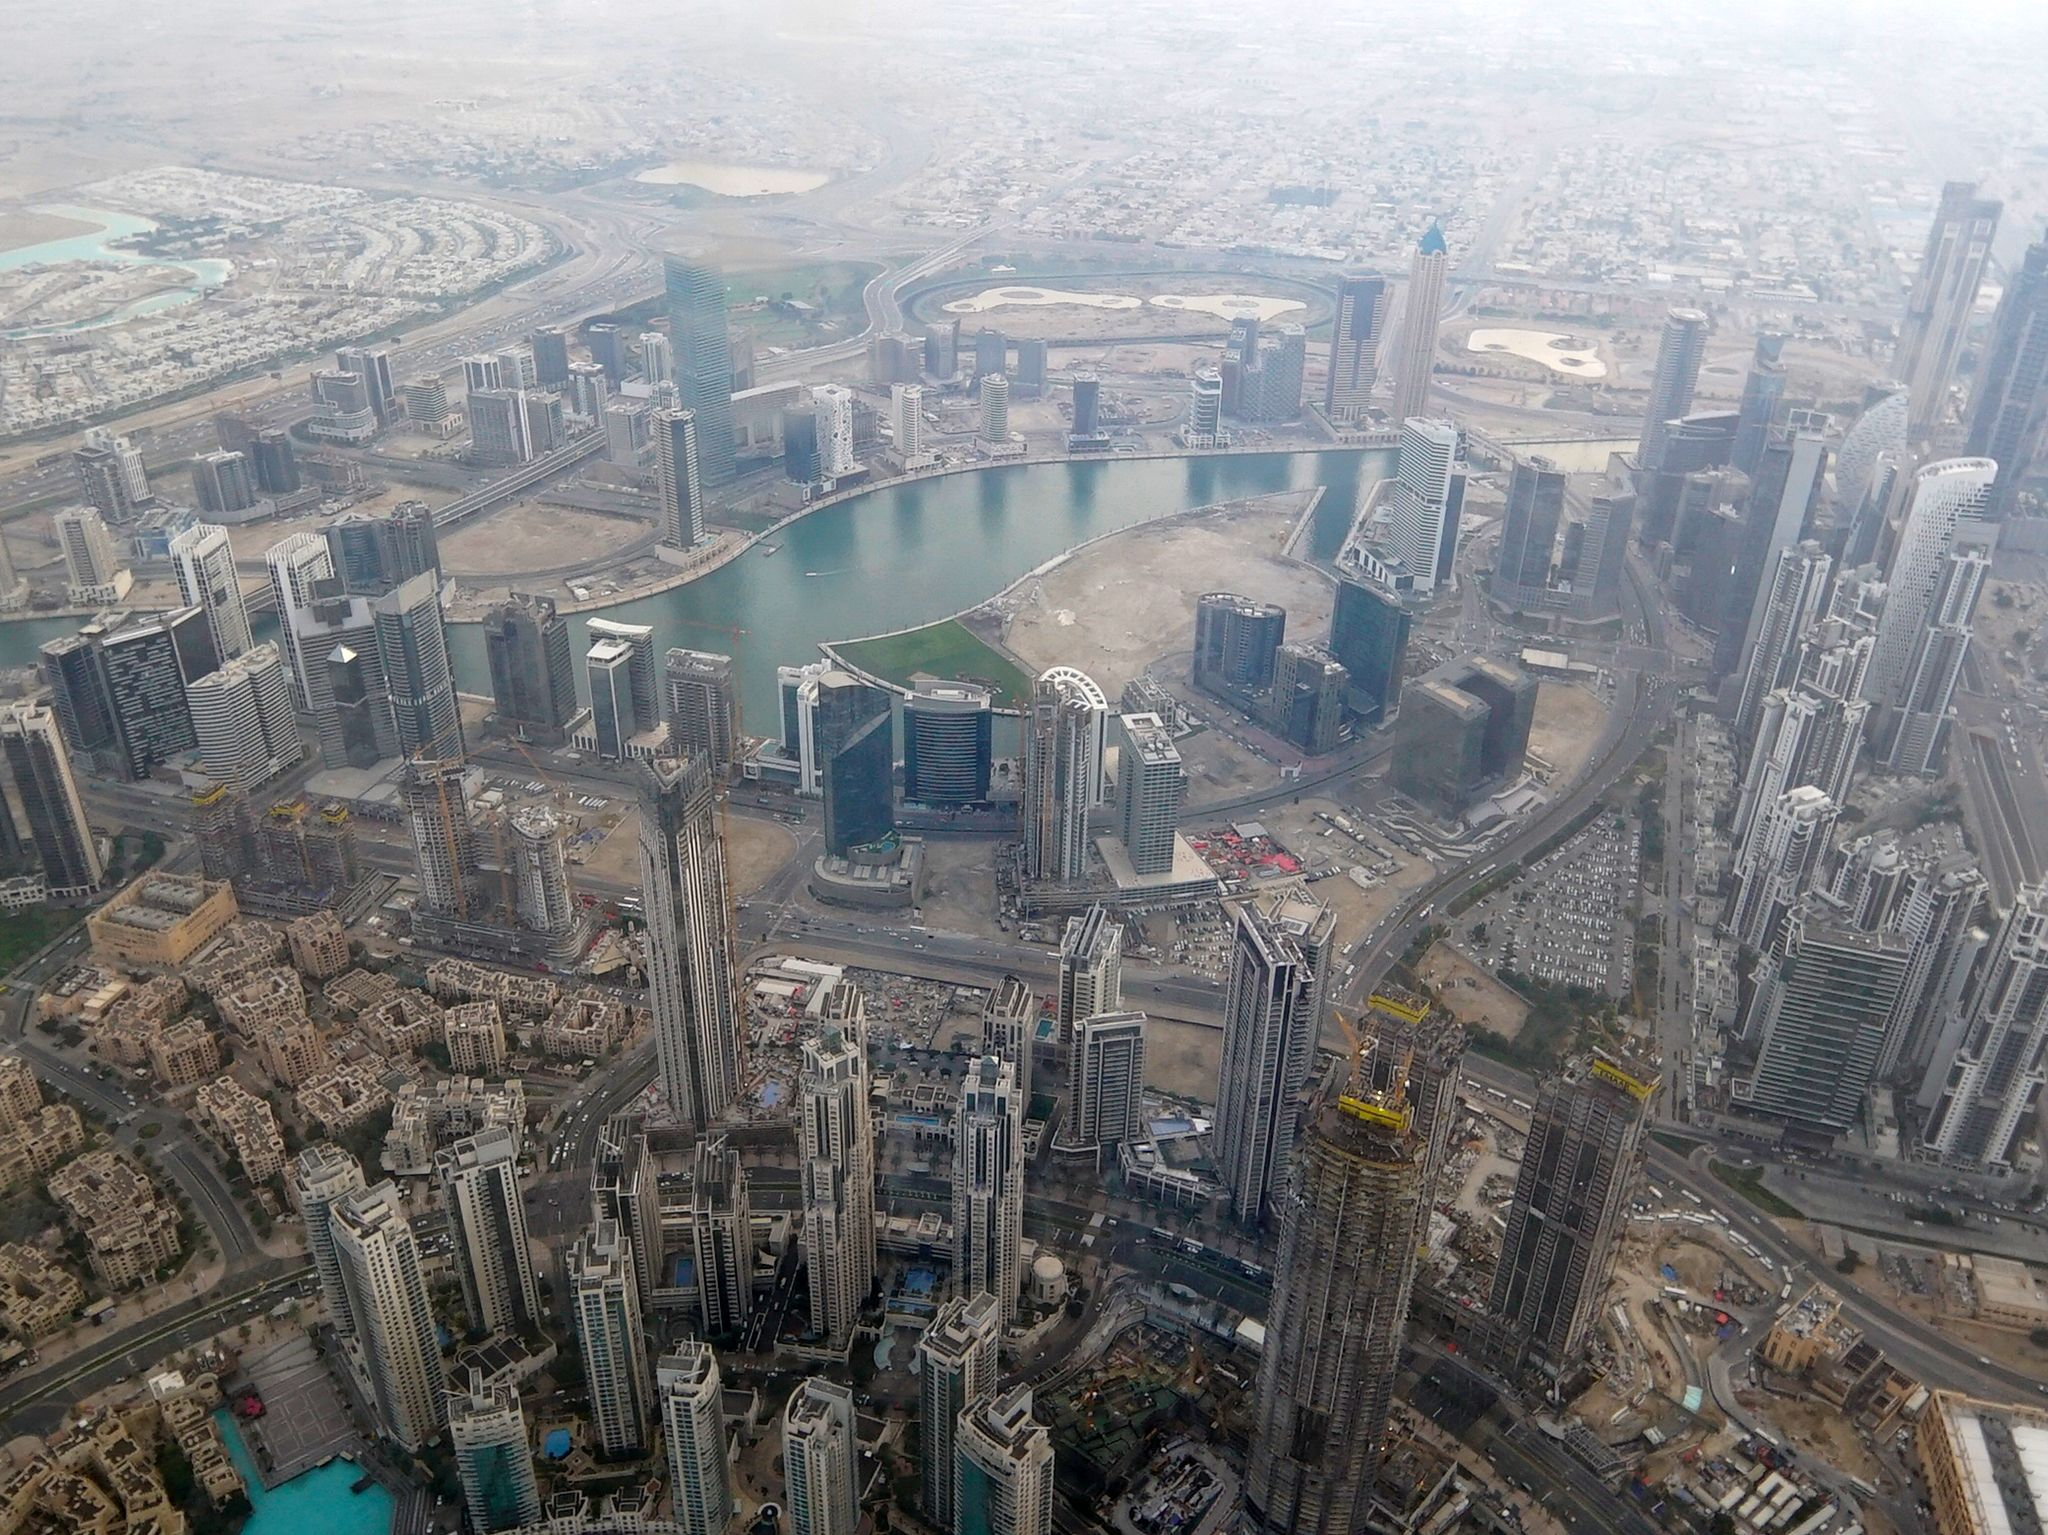 View from Burj. This image is from Superstructures: Engineering Marvels. [Photo of the day - May 2020]